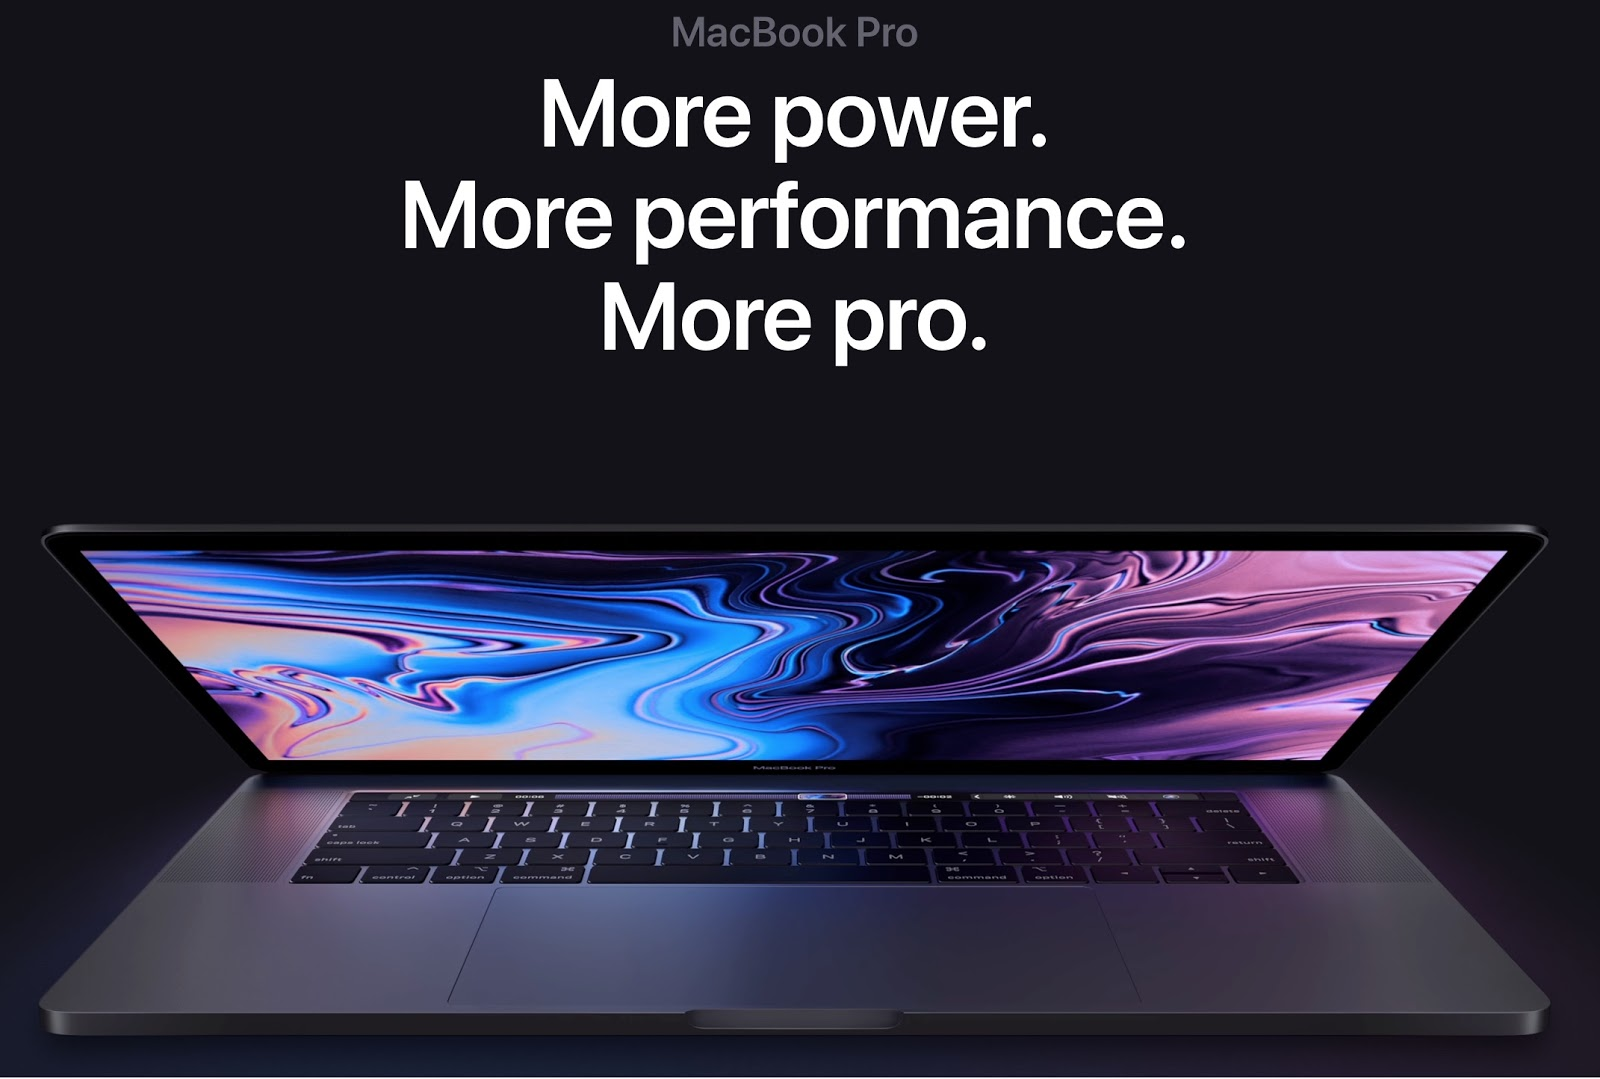 Screenshot showing the MacBook Pro